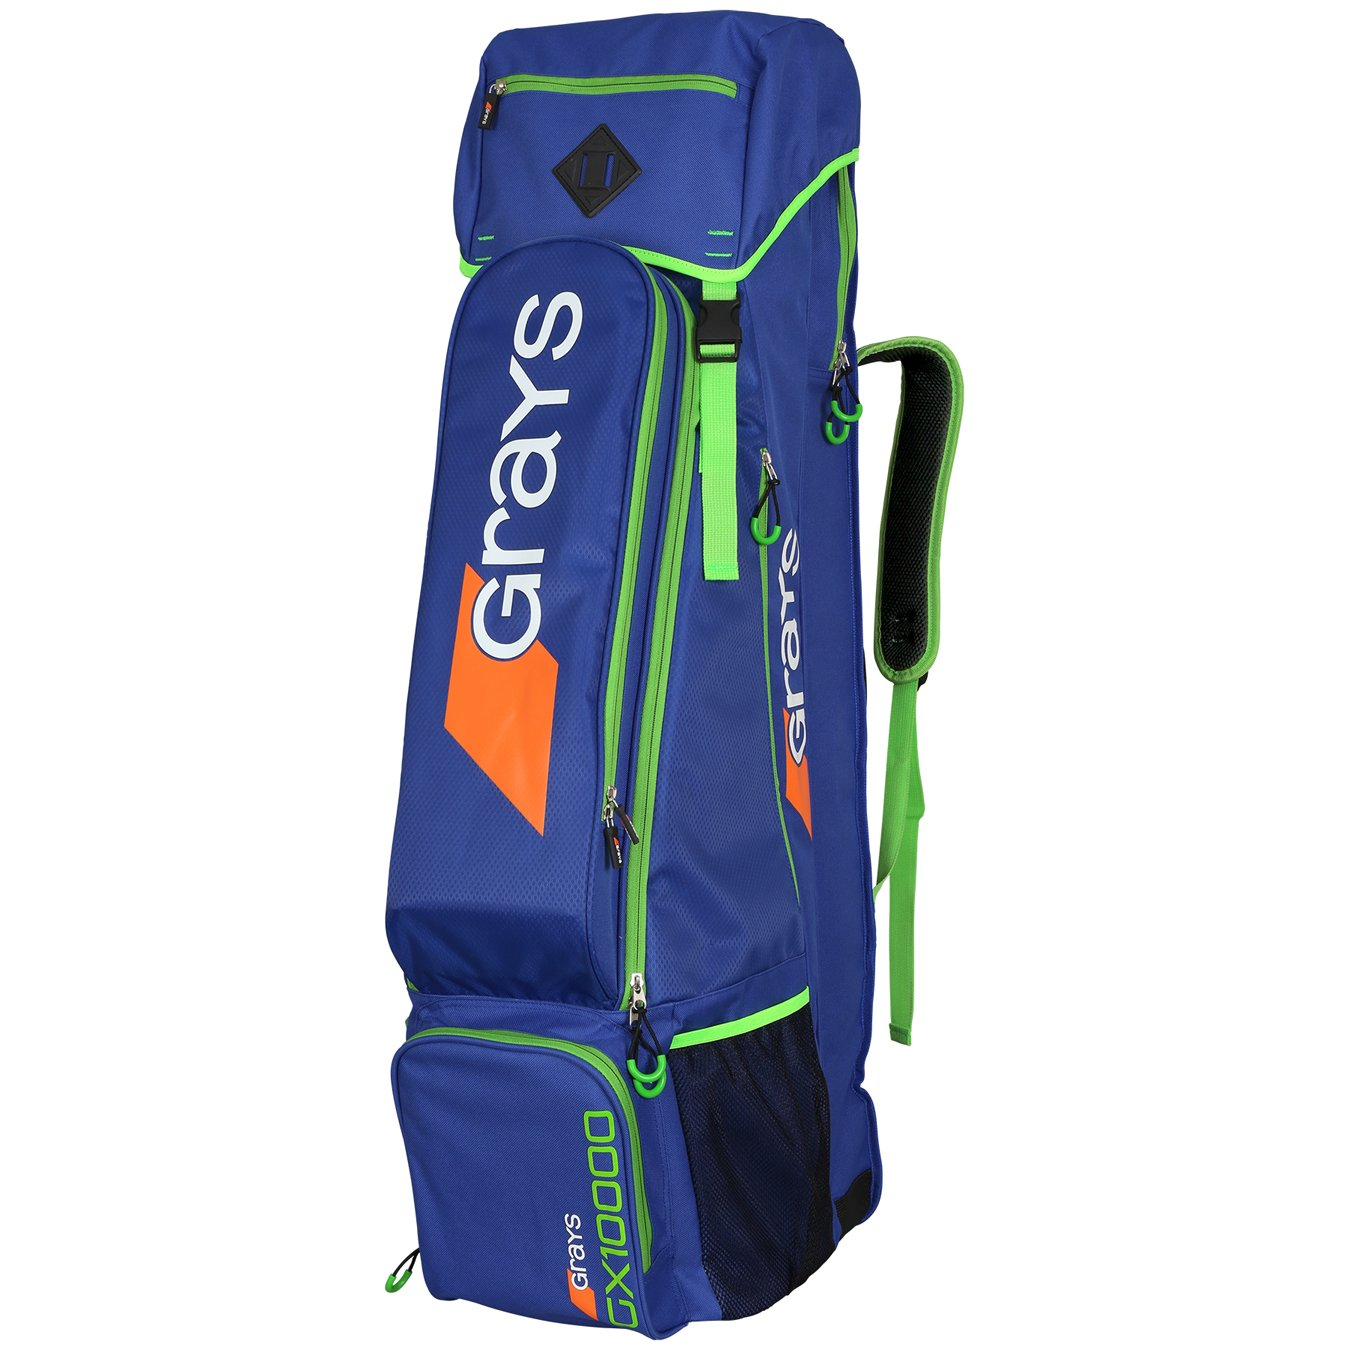 GRAYS GX10000 Bolsa Hockey Hierba, Azul/Verde, L: Amazon.es ...